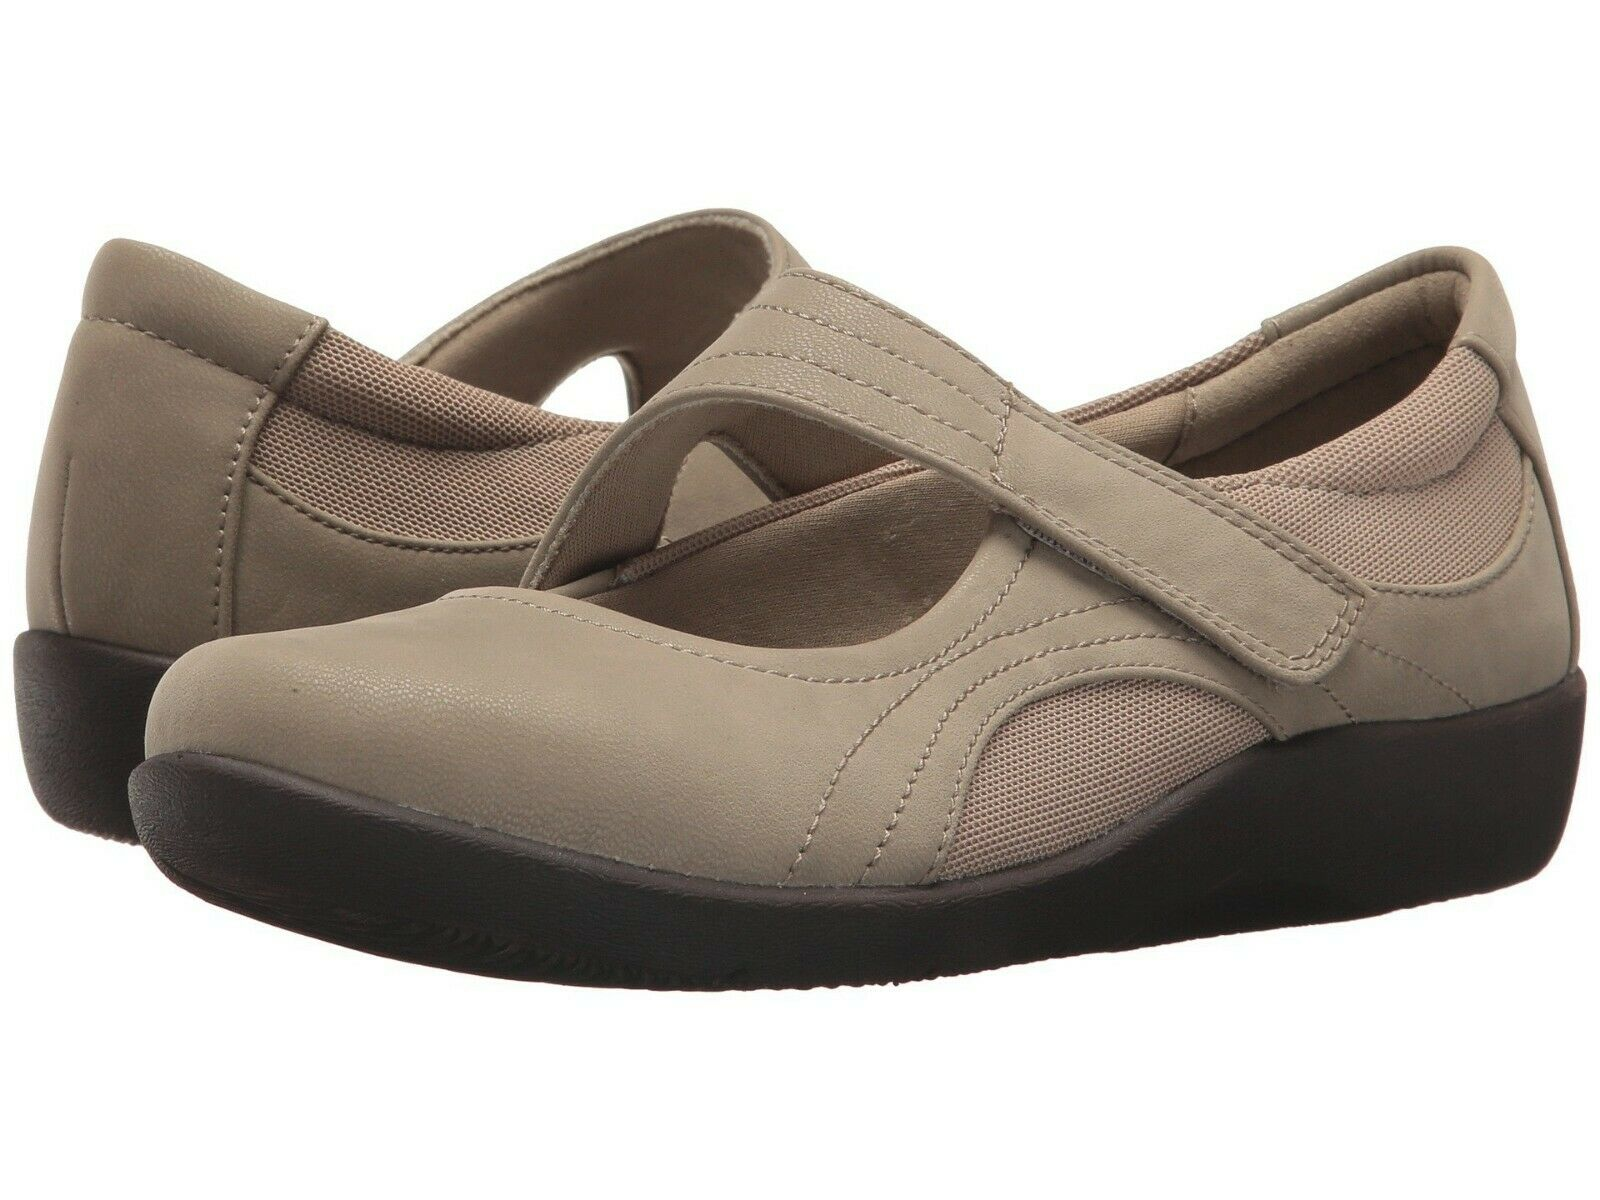 Chaussures femmes Clarks Sillian Bella Casual Mary Jane Flats 33425 SABLE  NEUF